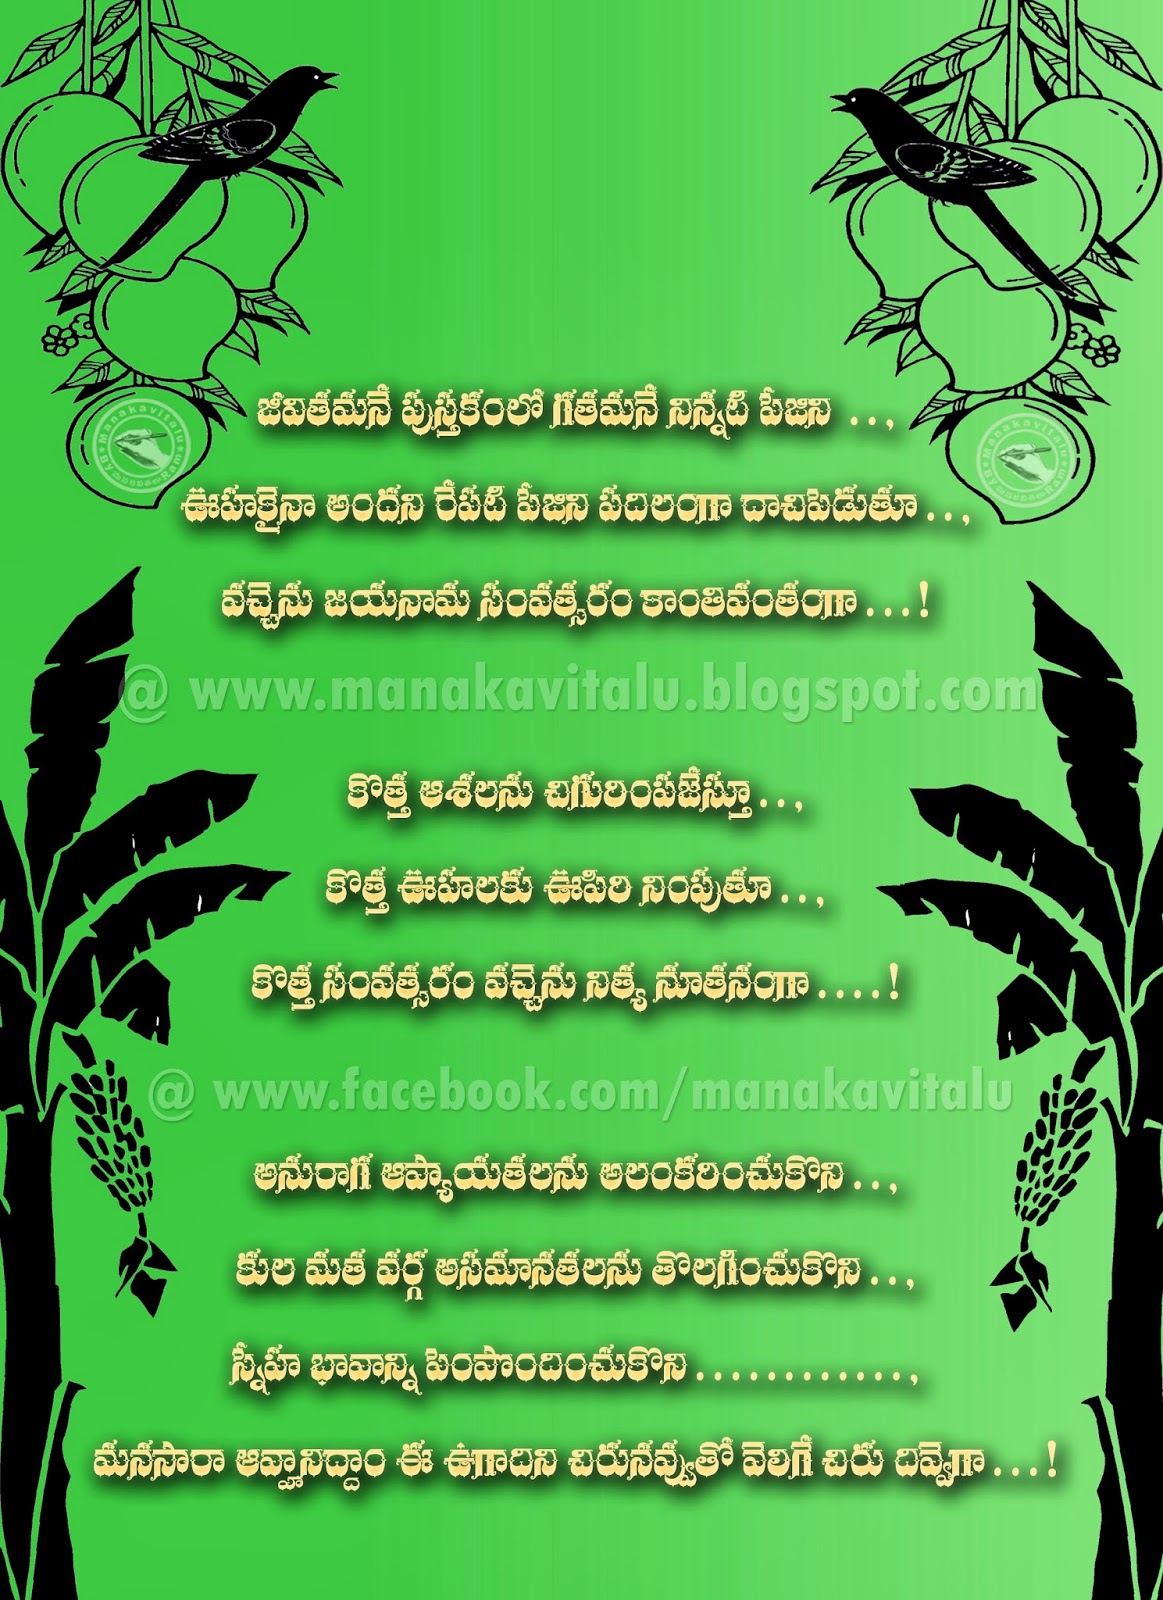 ugadi subhakankshalu wishes telugu kavitha, message, kavitvam, katha in telugu to by manakavitalu on photos images to download as jpg png